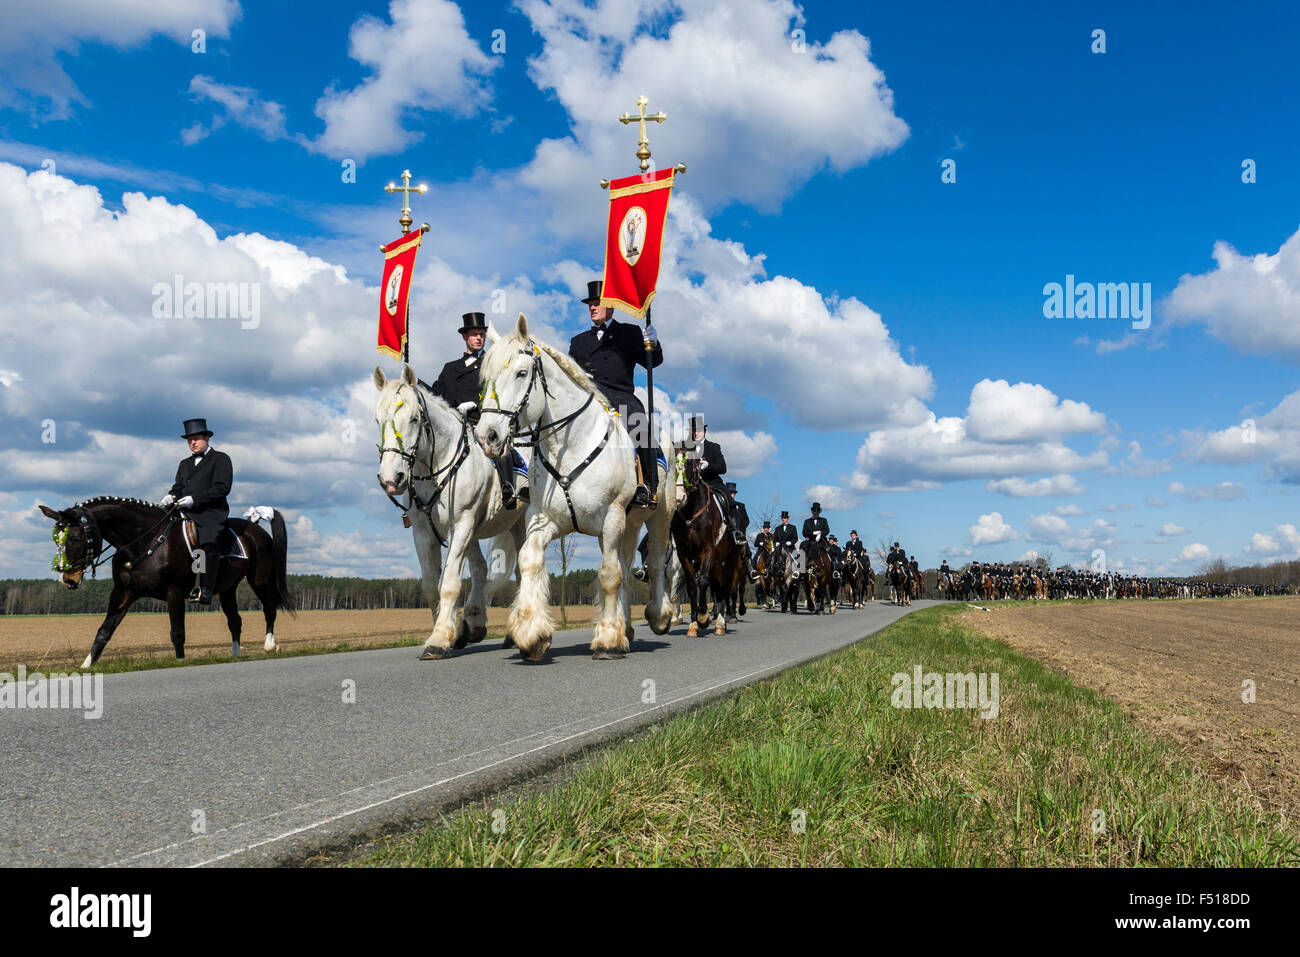 A procession on horses is tradition in sorbian culture at Easter Day, joined by hundreds of men - Stock Image